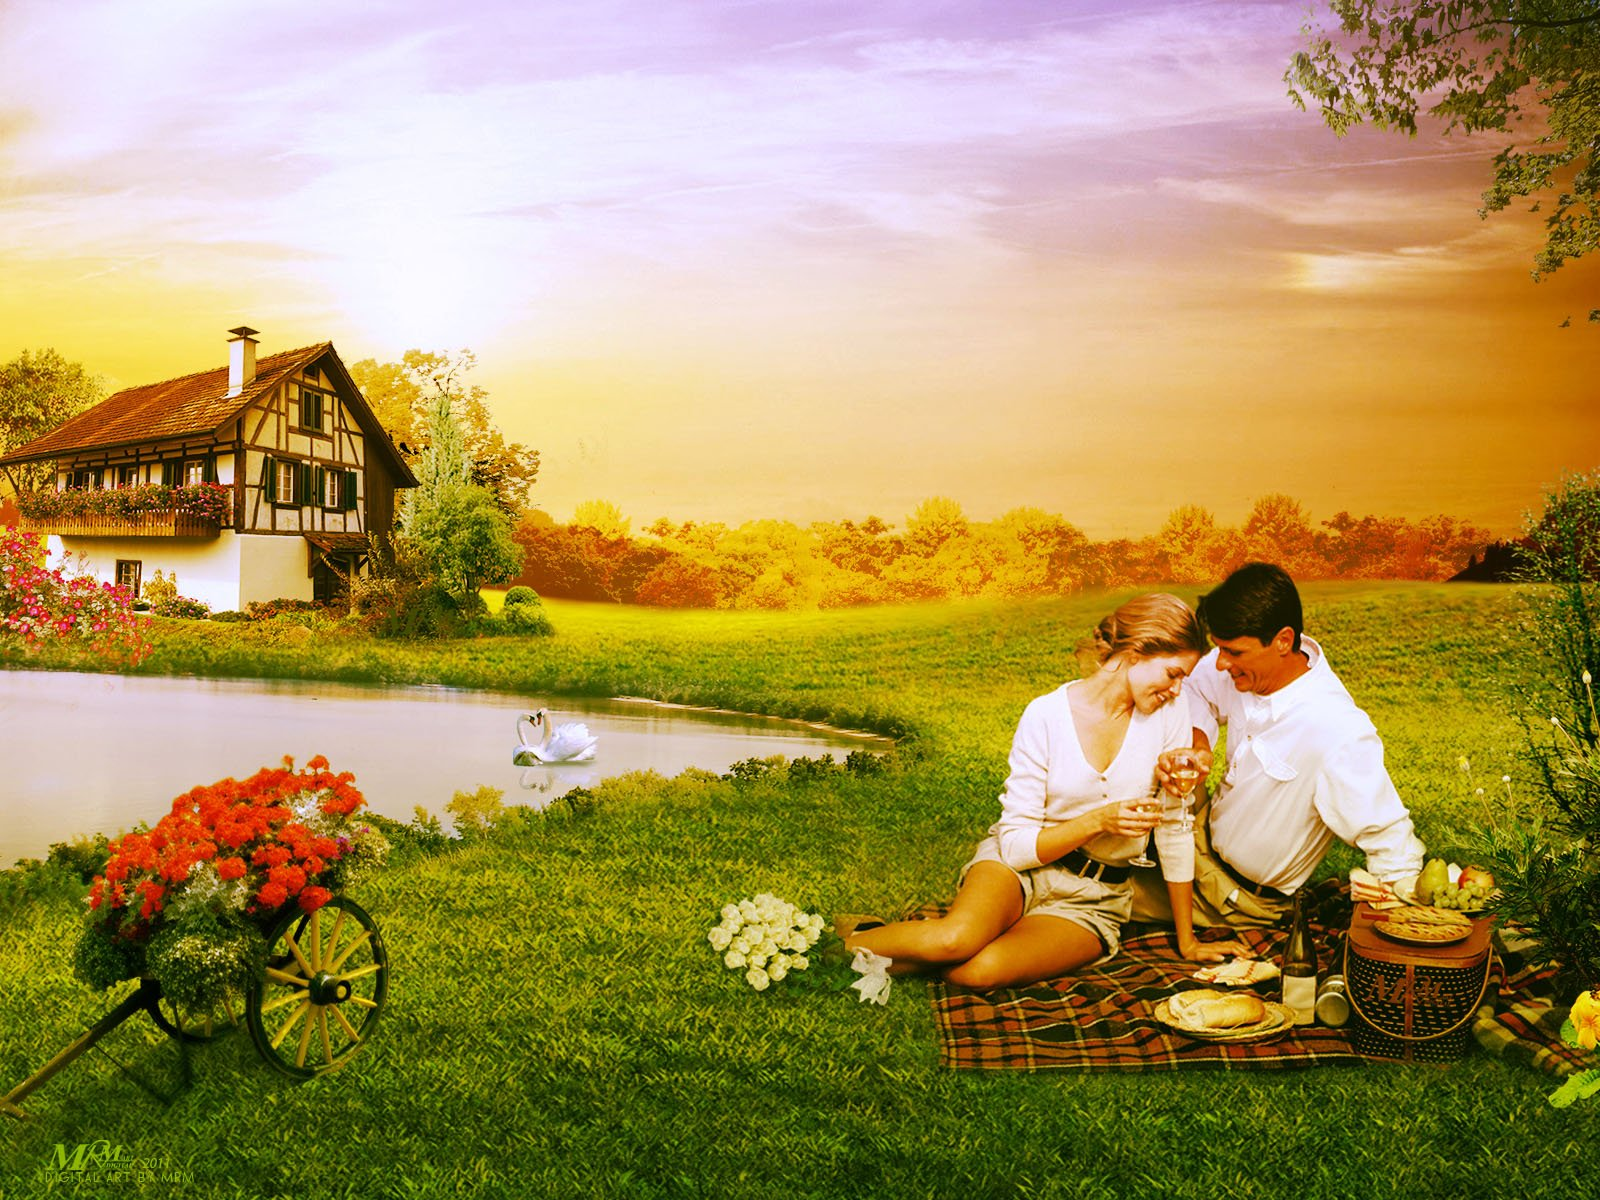 10 New Love Couple Hd Wallpaper Full Hd 1080p For Pc